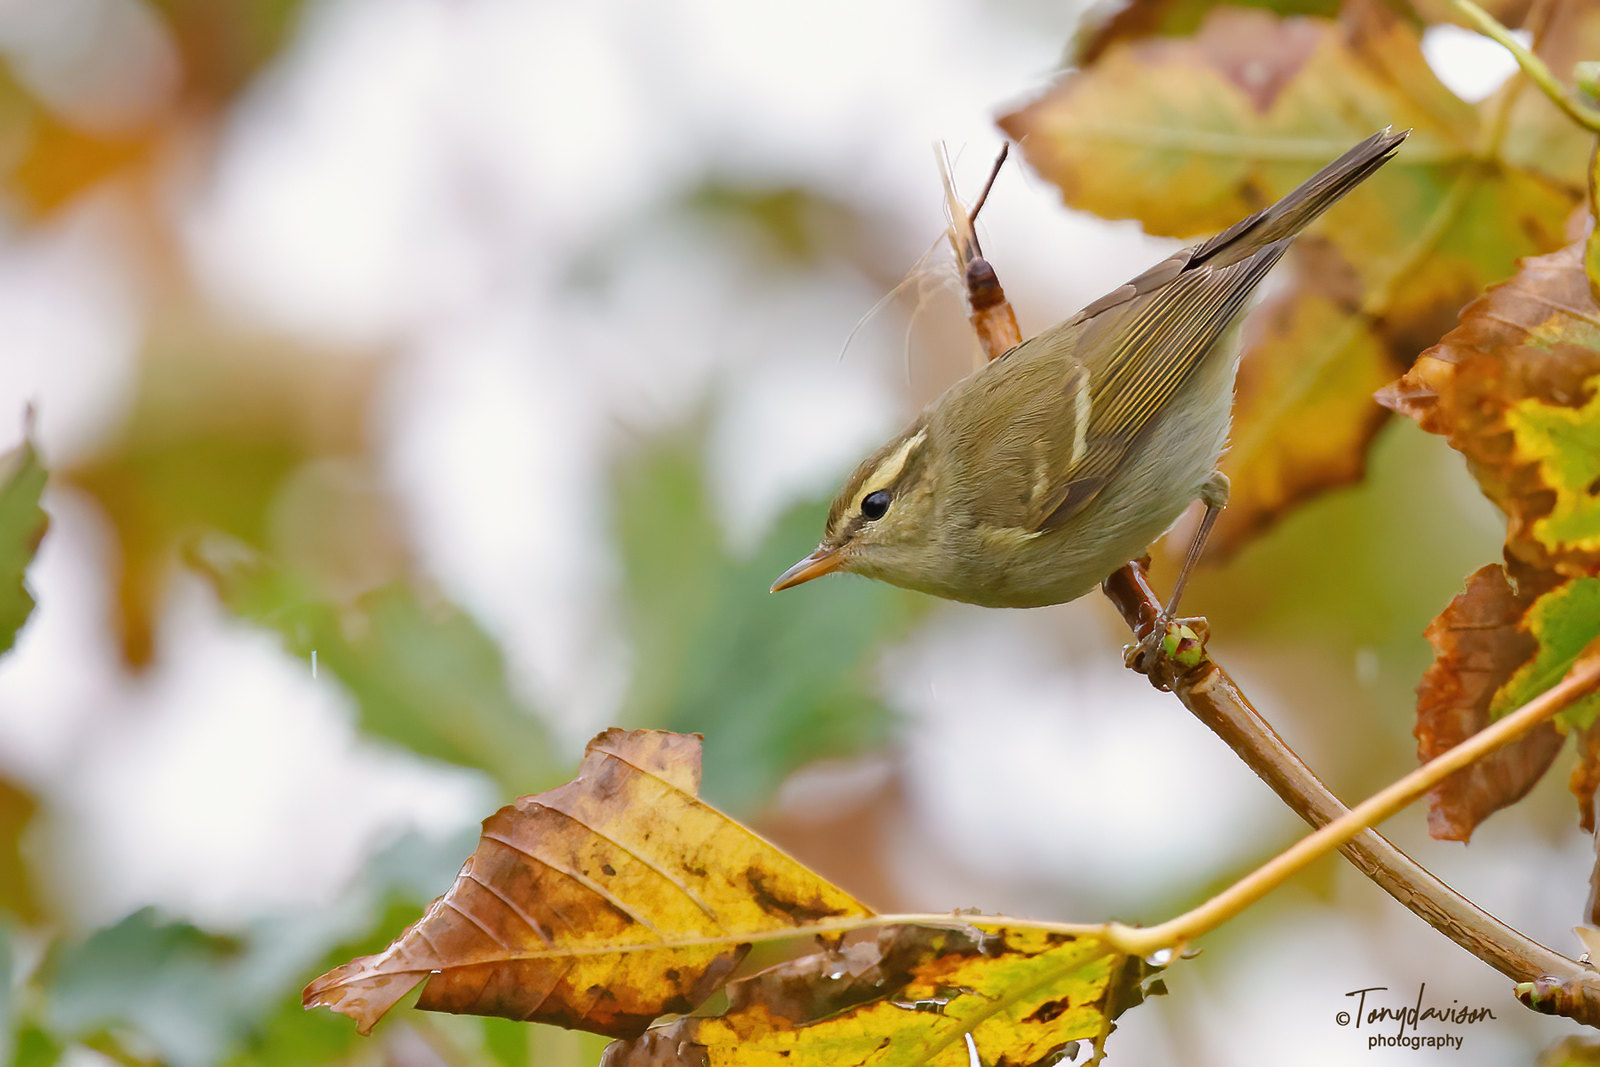 Two-barred Greenish Warbler - 1st winter